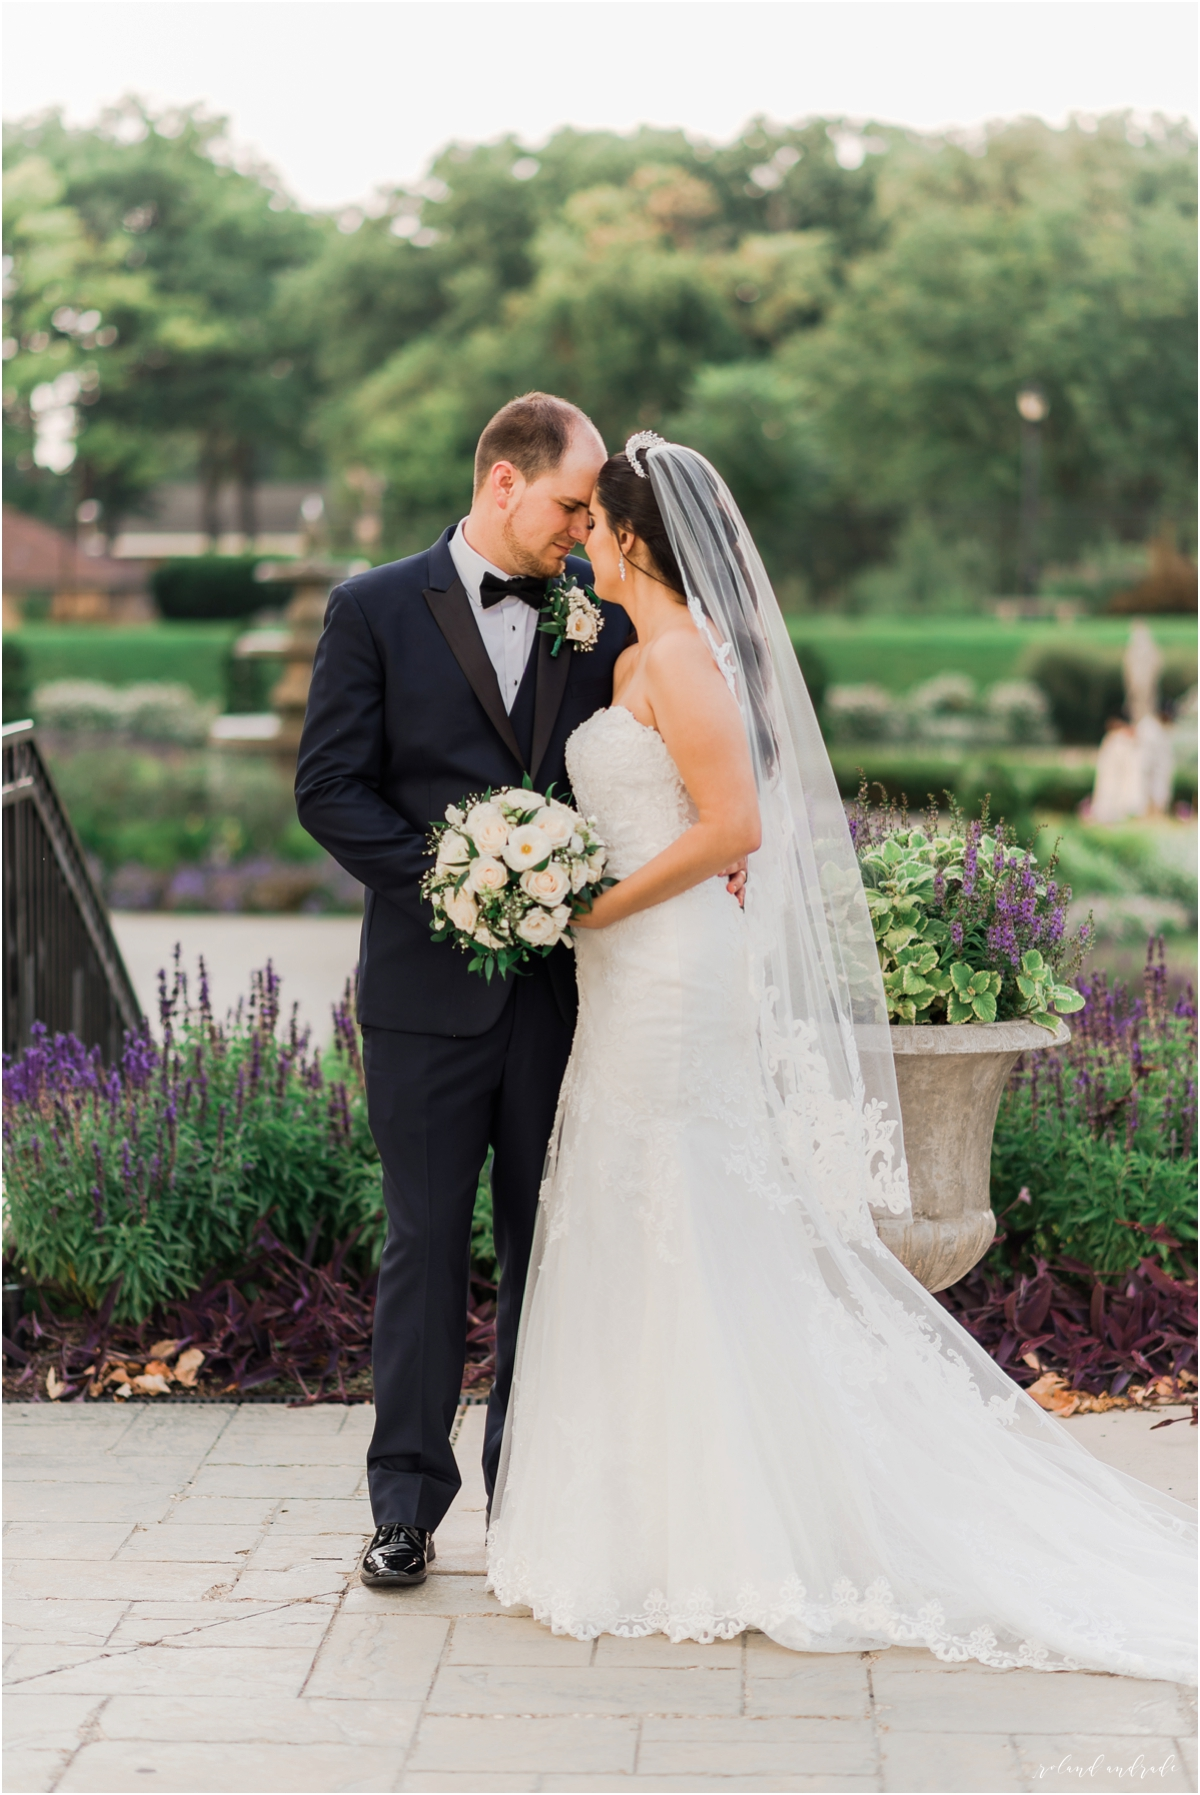 Gaslight Manor Wedding, Aurora Wedding, Green Wedding, Chicago Wedding Photographer, Aurora Wedding Photographer_0031.jpg